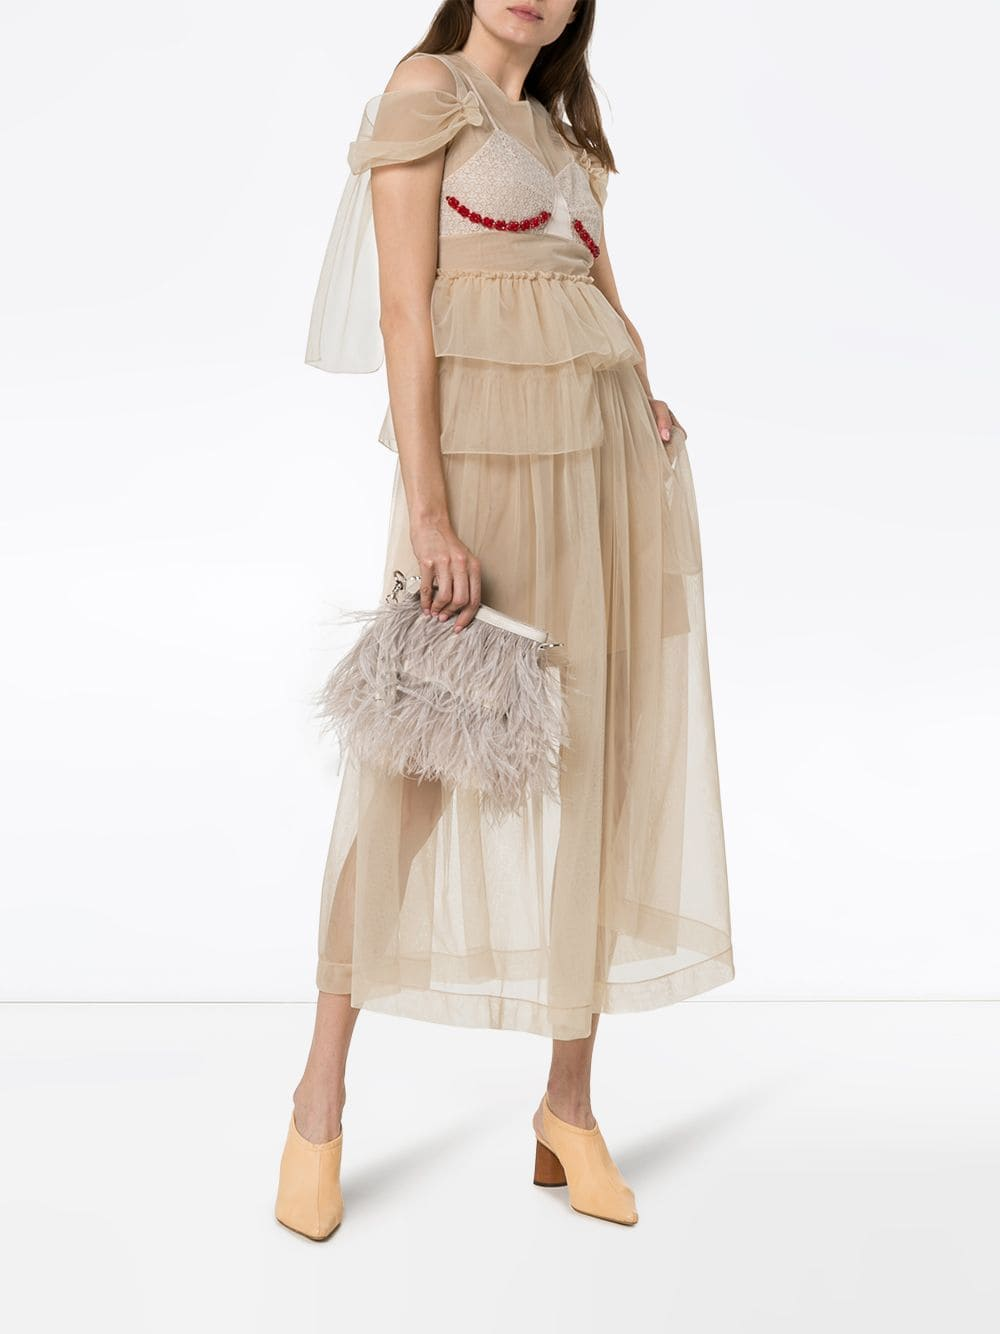 SIMONE ROCHA Sheer Embellished Midi Dress